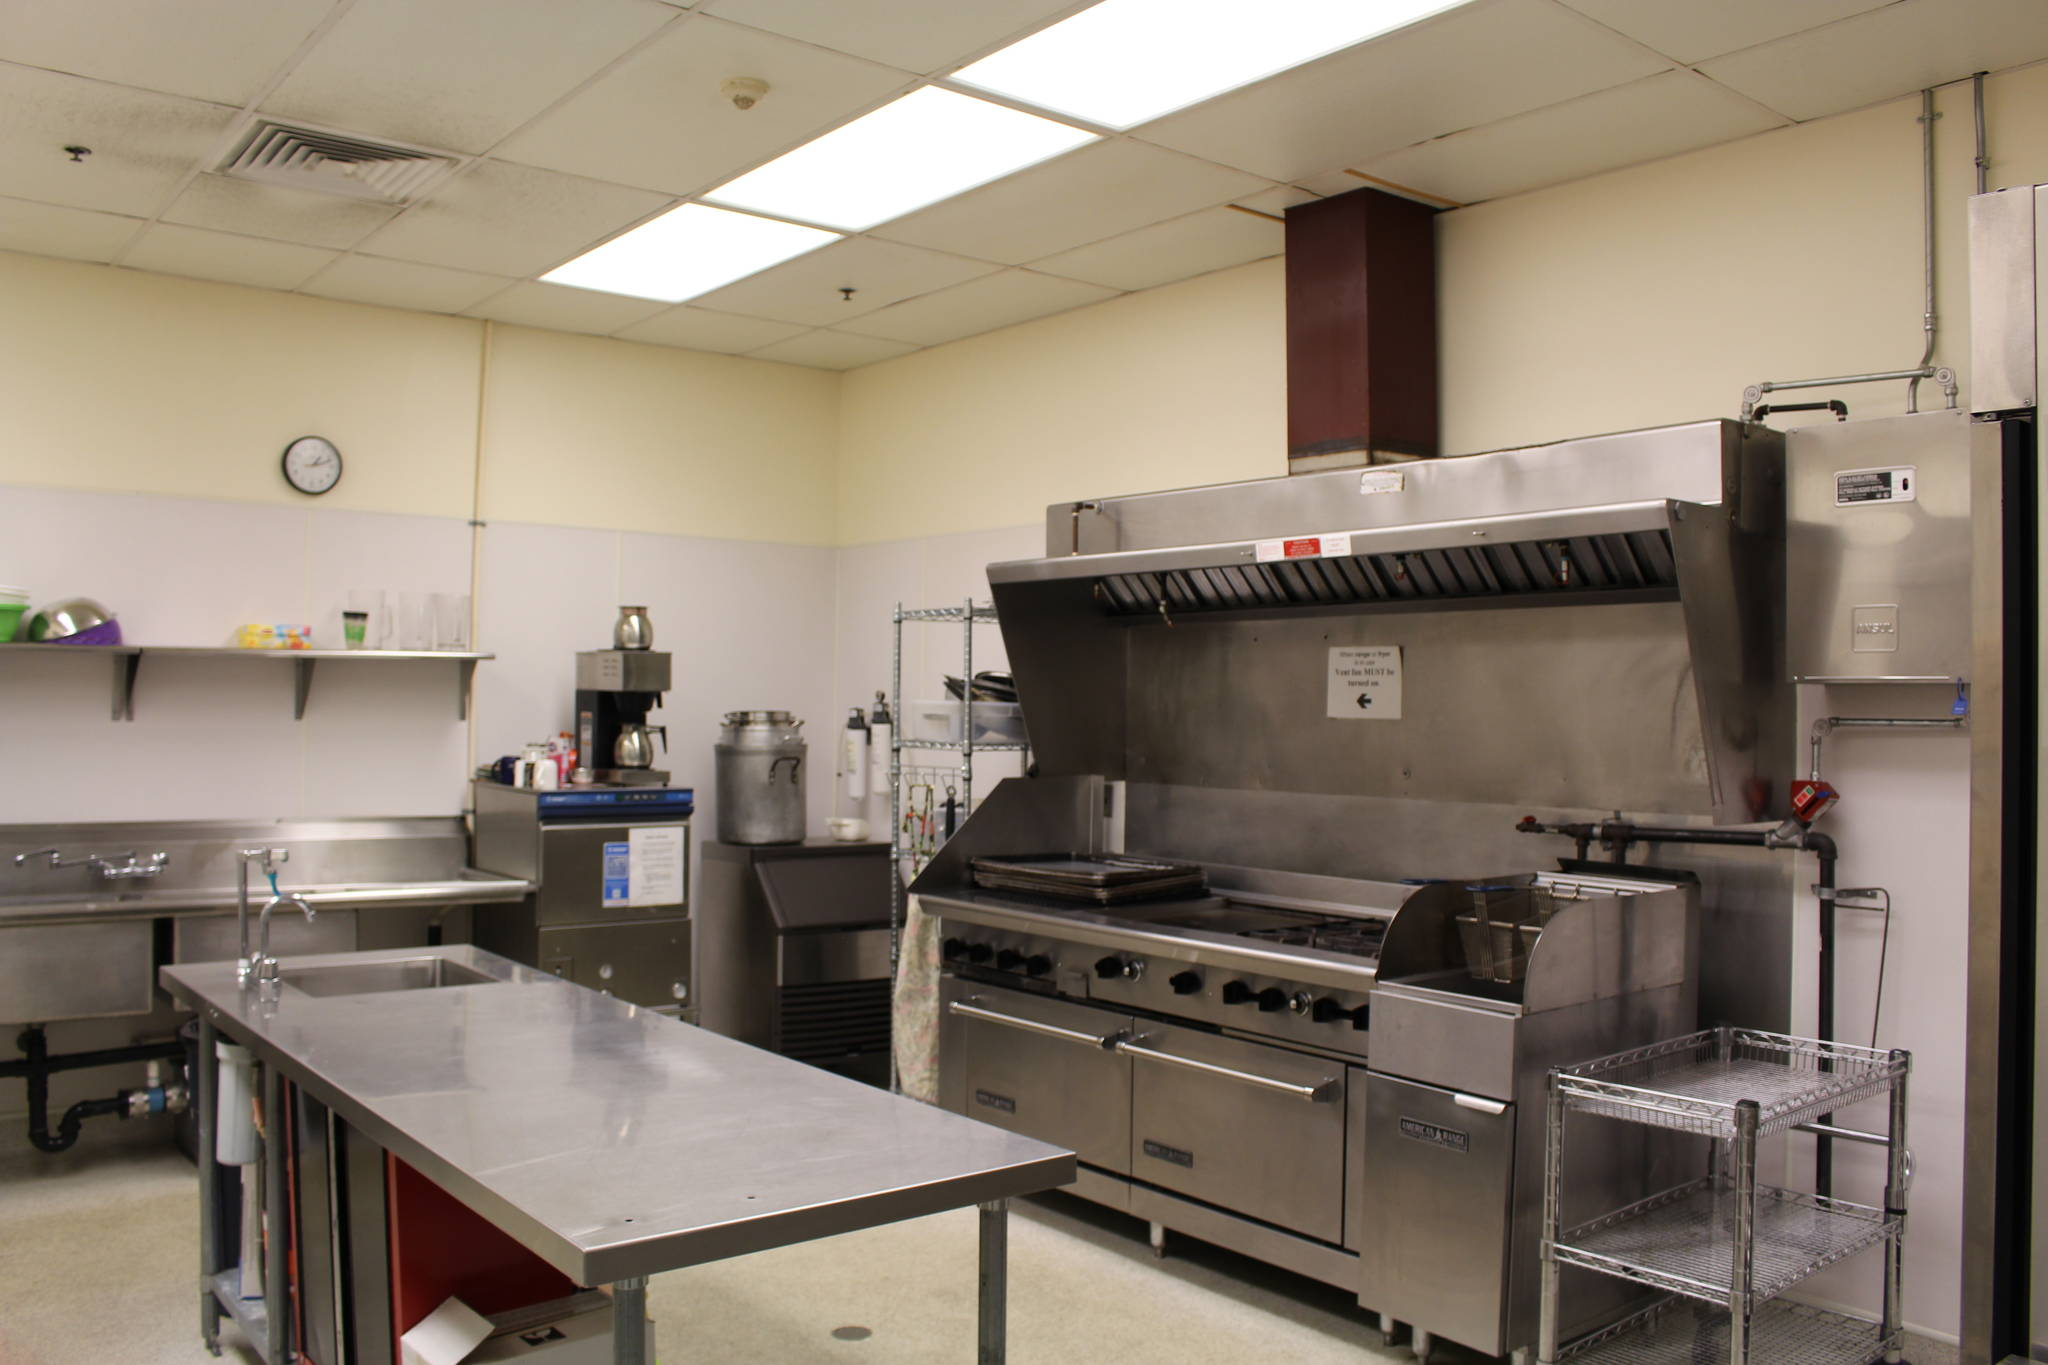 The commercial kitchen at the Challenger Learning Center, which could be used as an emergency cold weather shelter this winter, is seen here on Sept. 10, 2020. (Photo by Brian Mazurek/Peninsula Clarion)